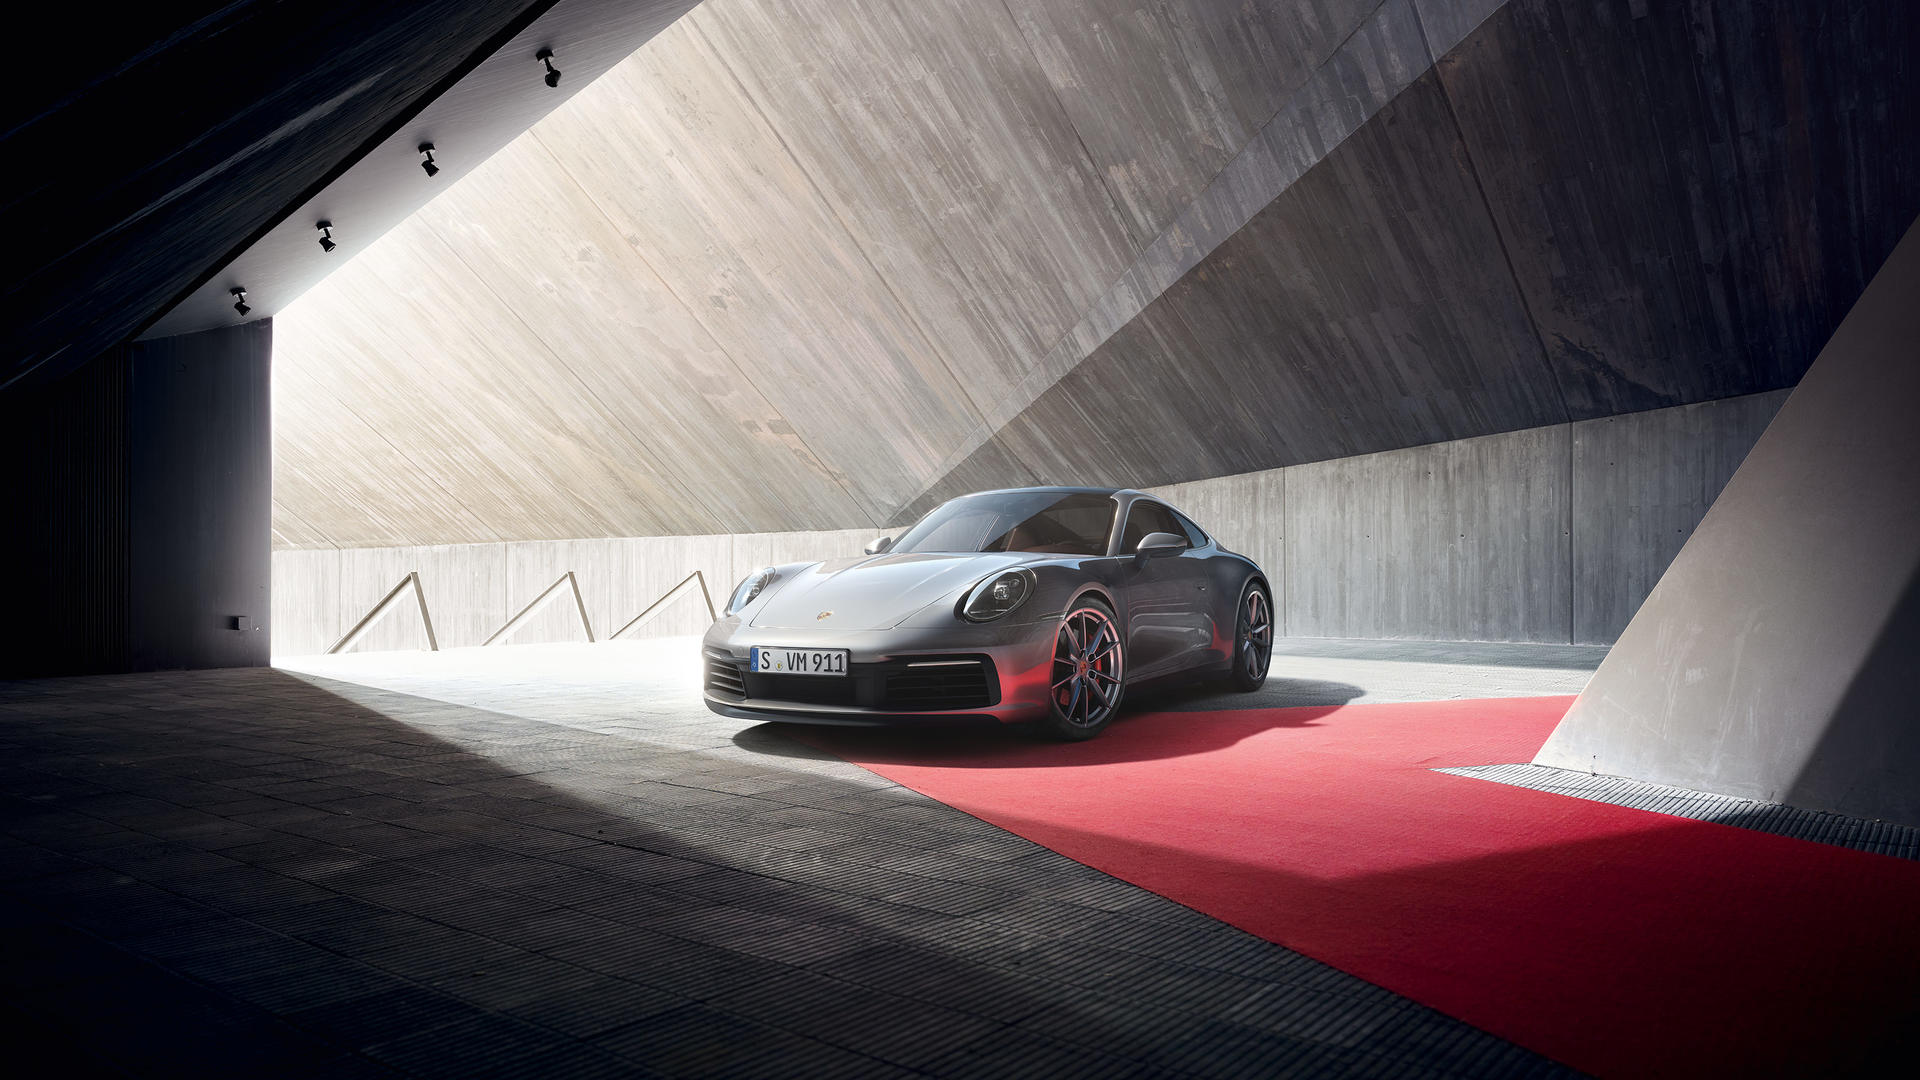 Porsche Wallpapers HD Cars Emblem Logo Images Free To